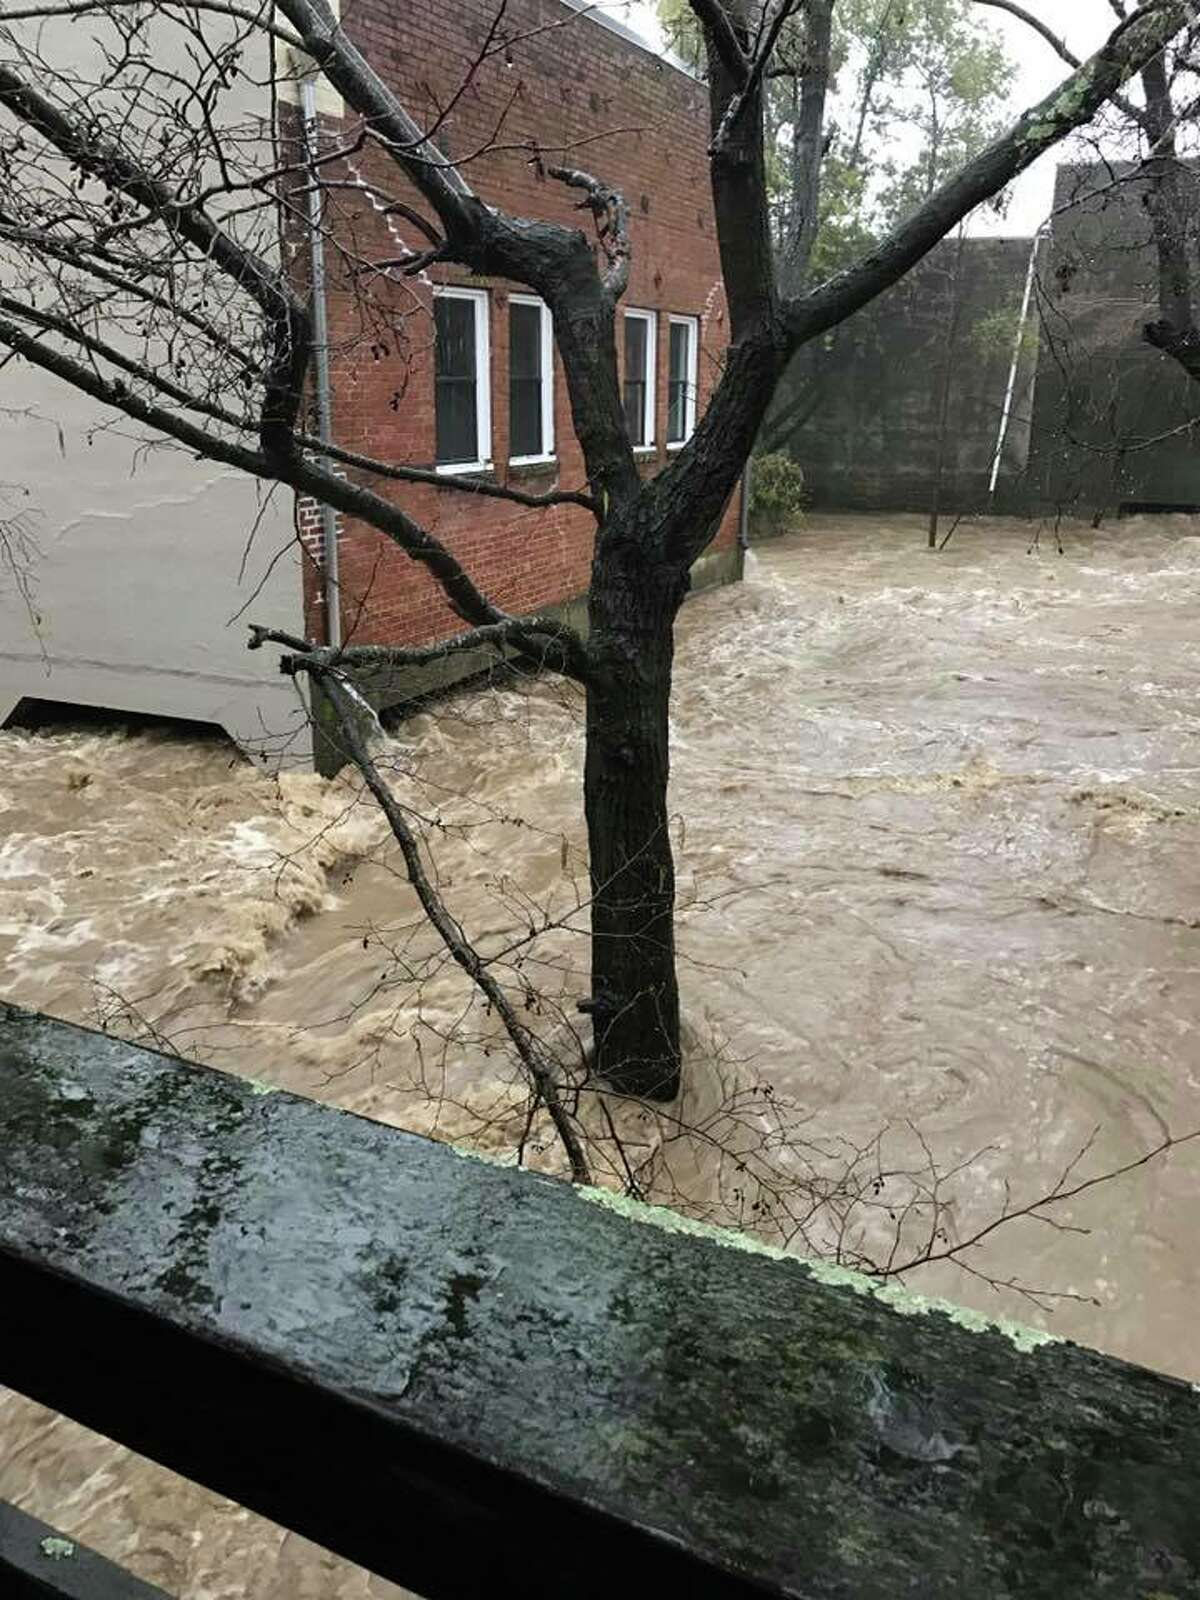 Donna Seymour, owner of Cucina restaurant in San Anselmo, captured a photo of flooding on Feb. 7, 2017.